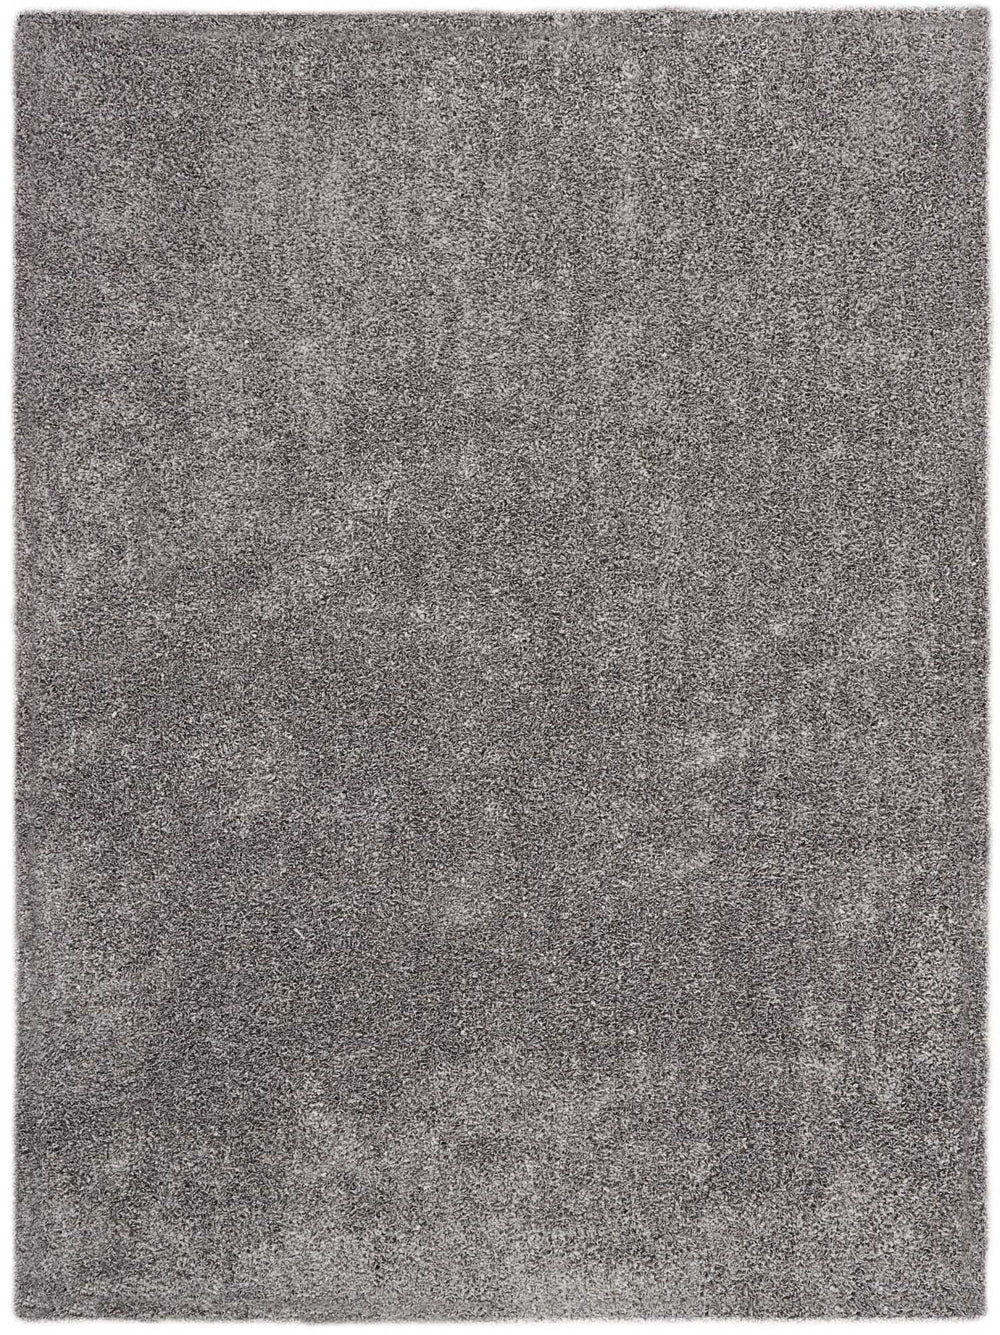 Nourison Palm Beach BTSA2 Area Rug